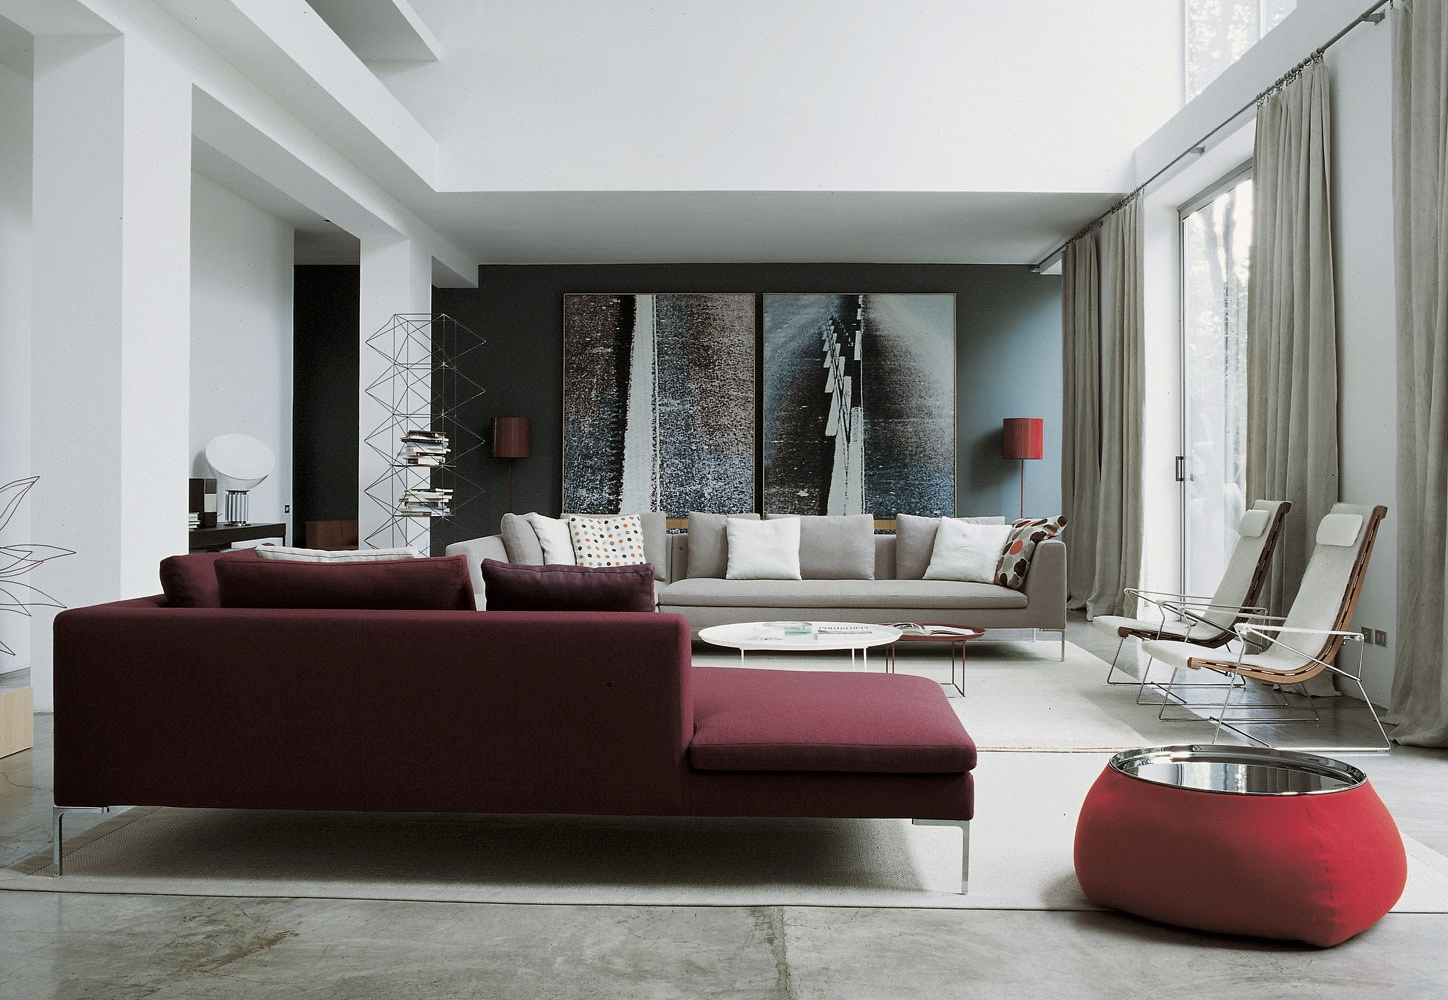 leather for with also wall unique ideas sofa room maroon gray design couch living grey burgundy color decorating and